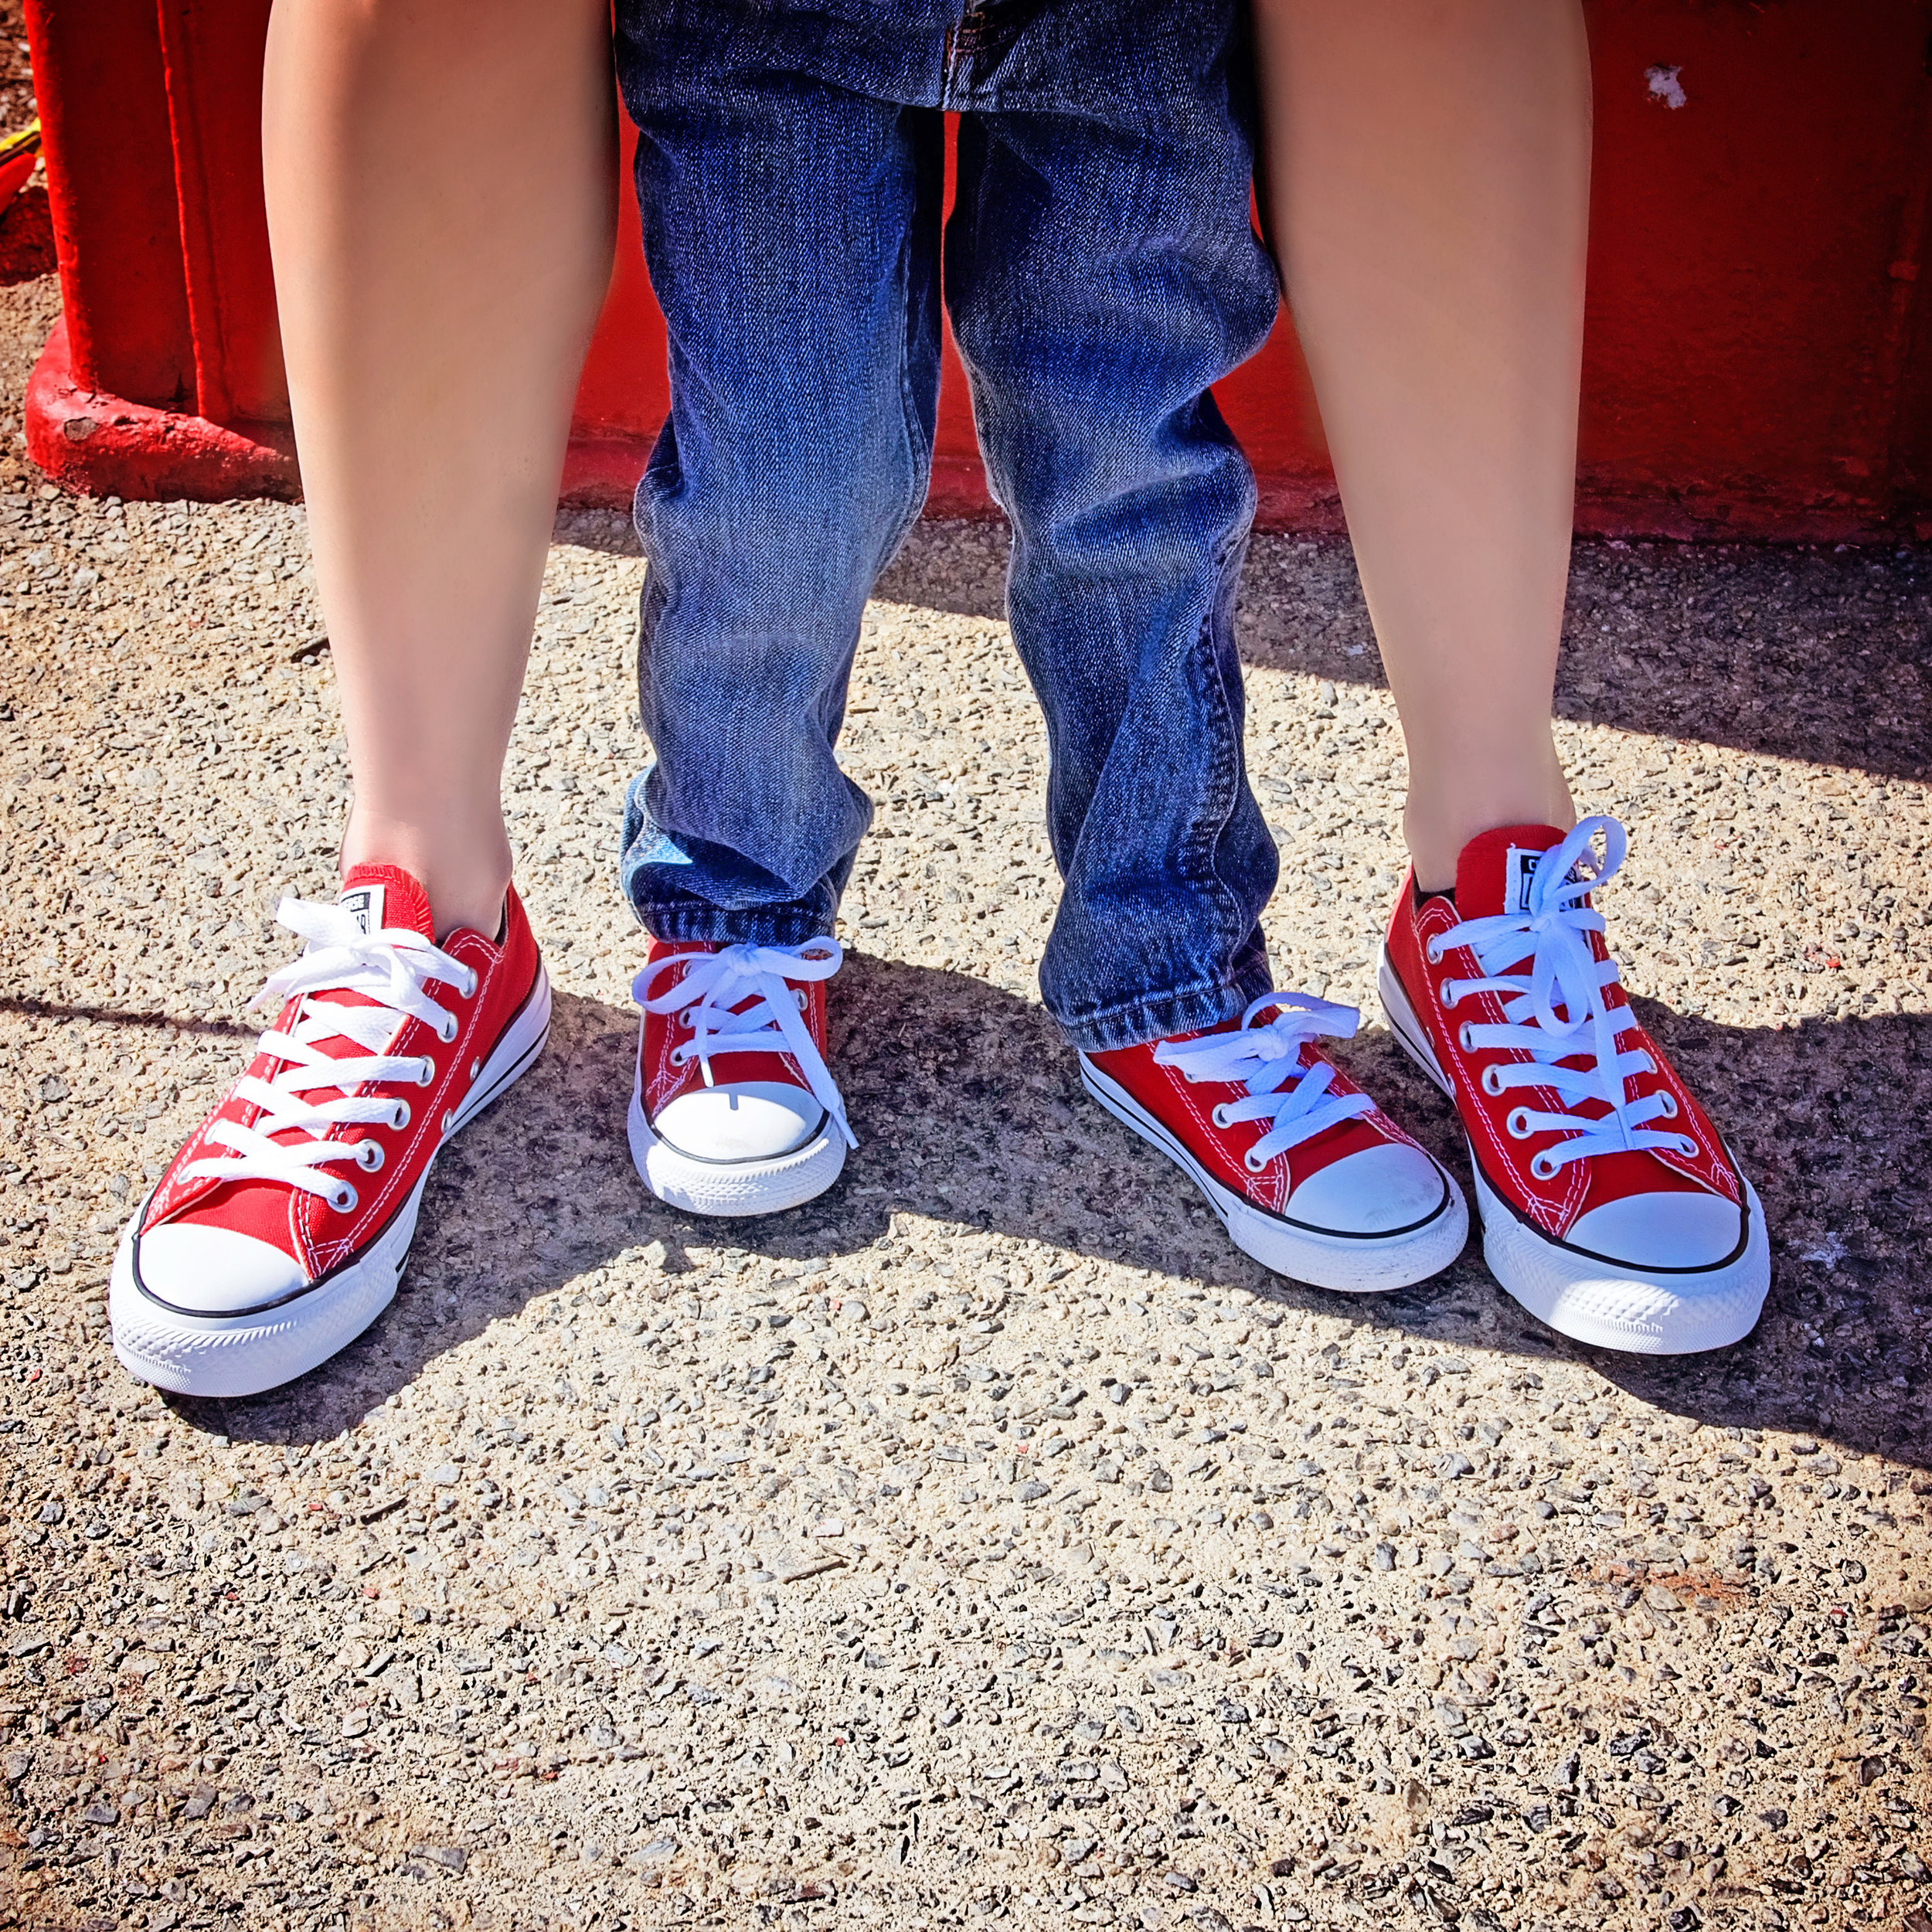 Mother Son Portraits Red Shoes | Lifestyle Portrait Photography | Lacey O